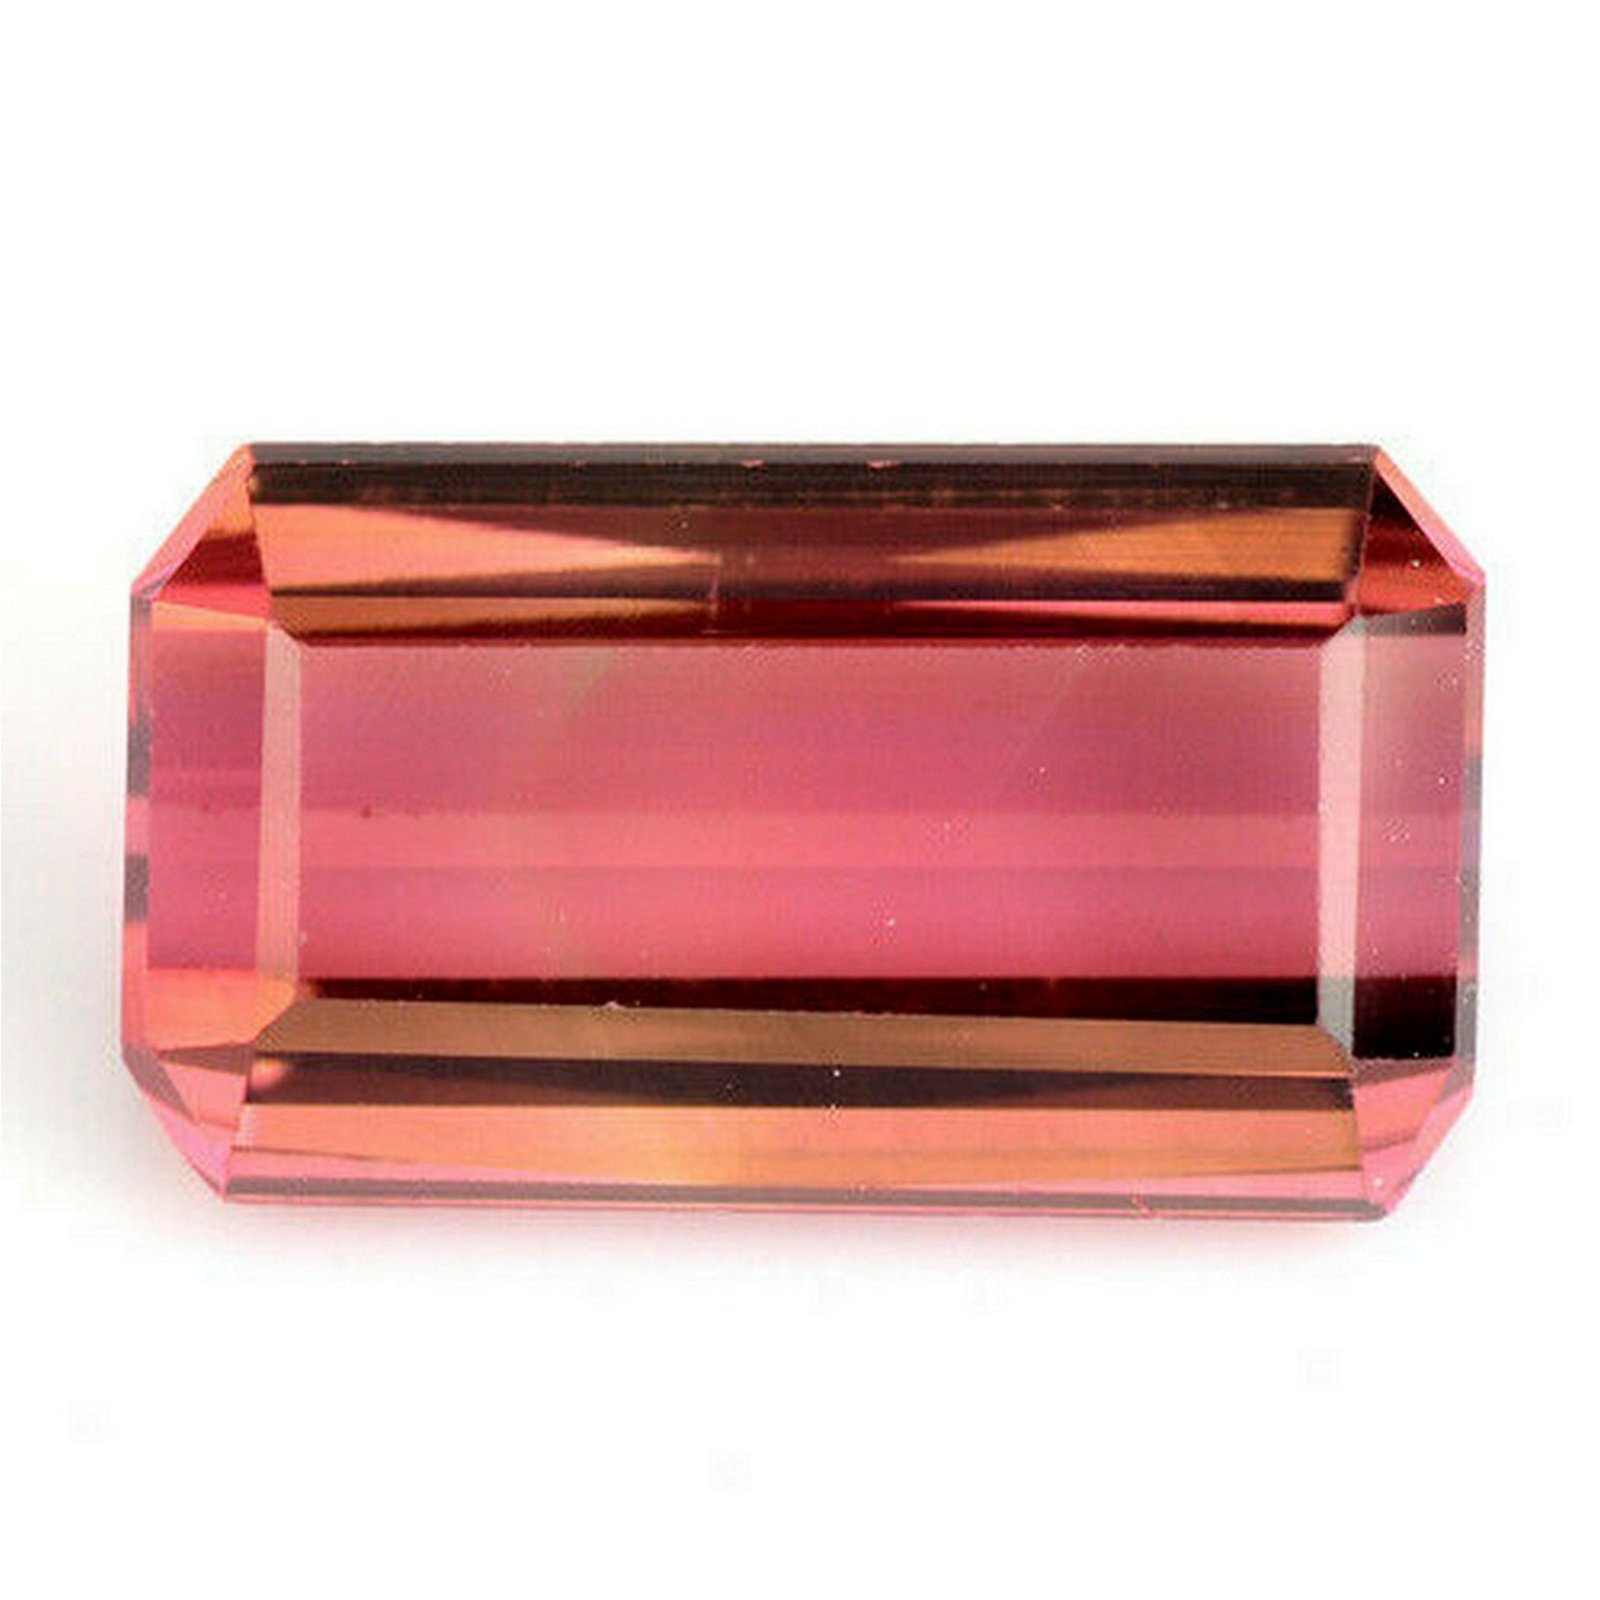 3.92 ct natural AIG certified tourmaline